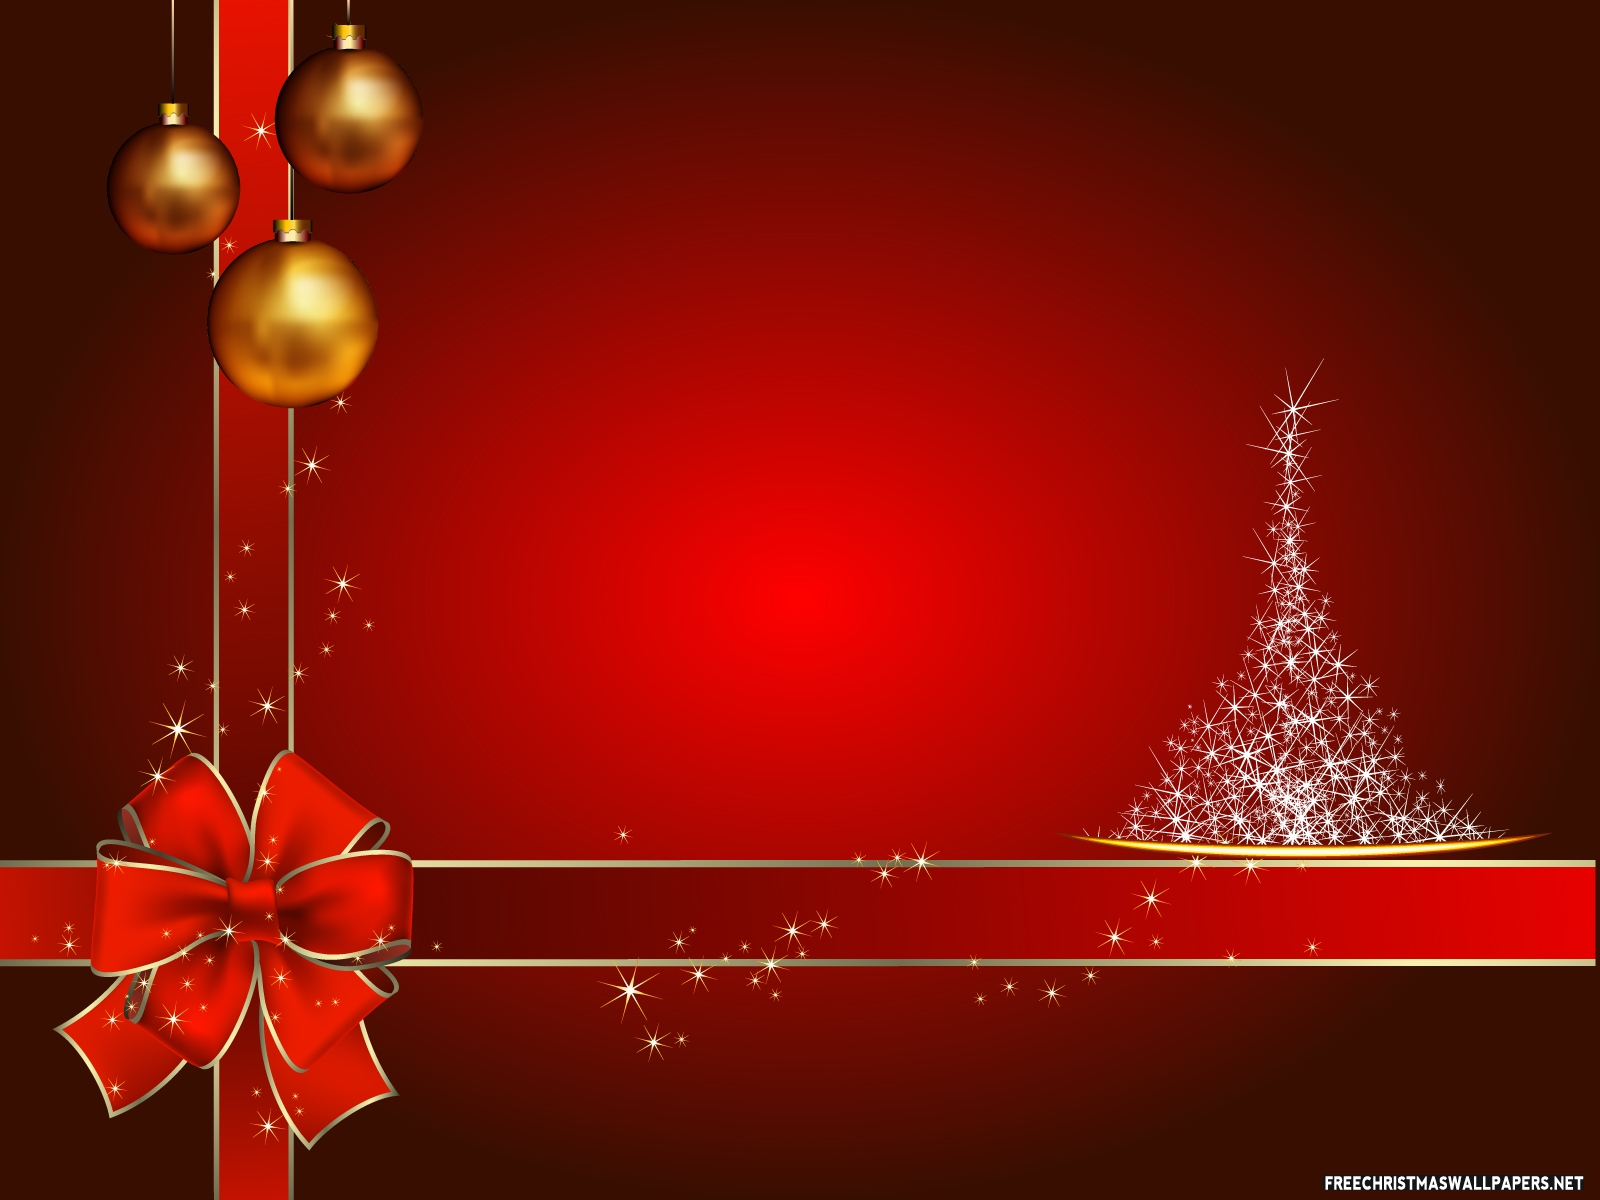 45 Christmas Gift Wallpaper On Wallpapersafari